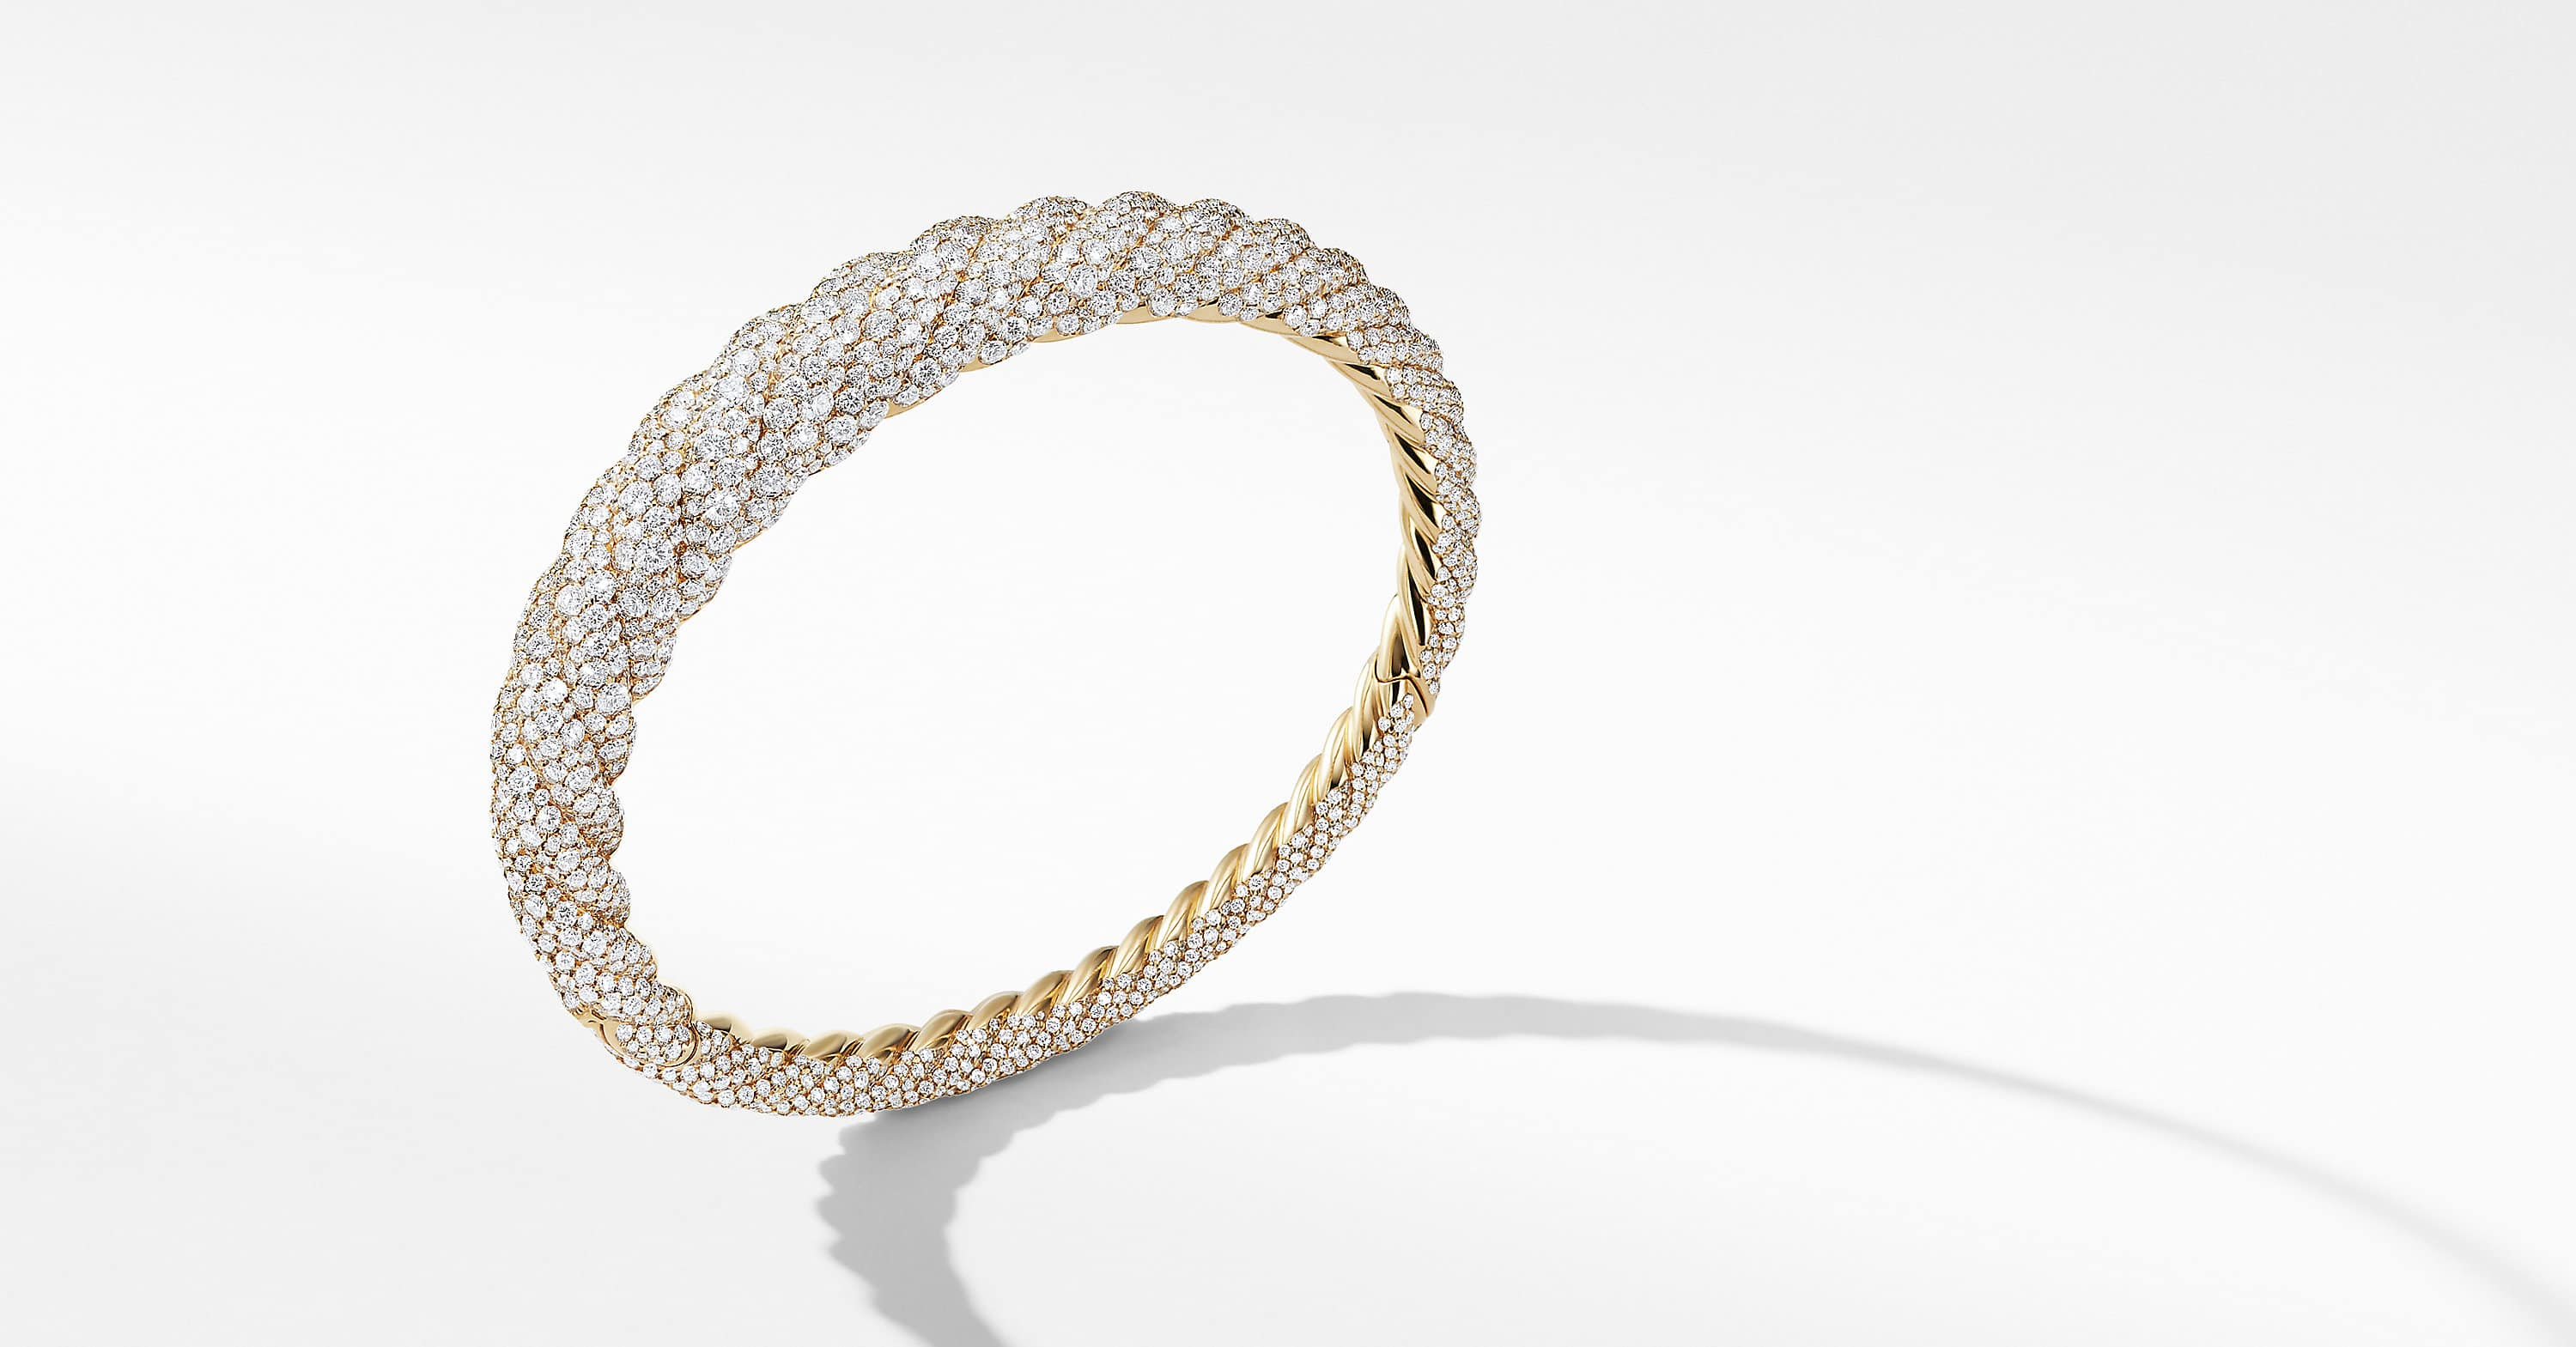 Bracelet torsadé « Cable » Pure Form en diamant et or 18 carats